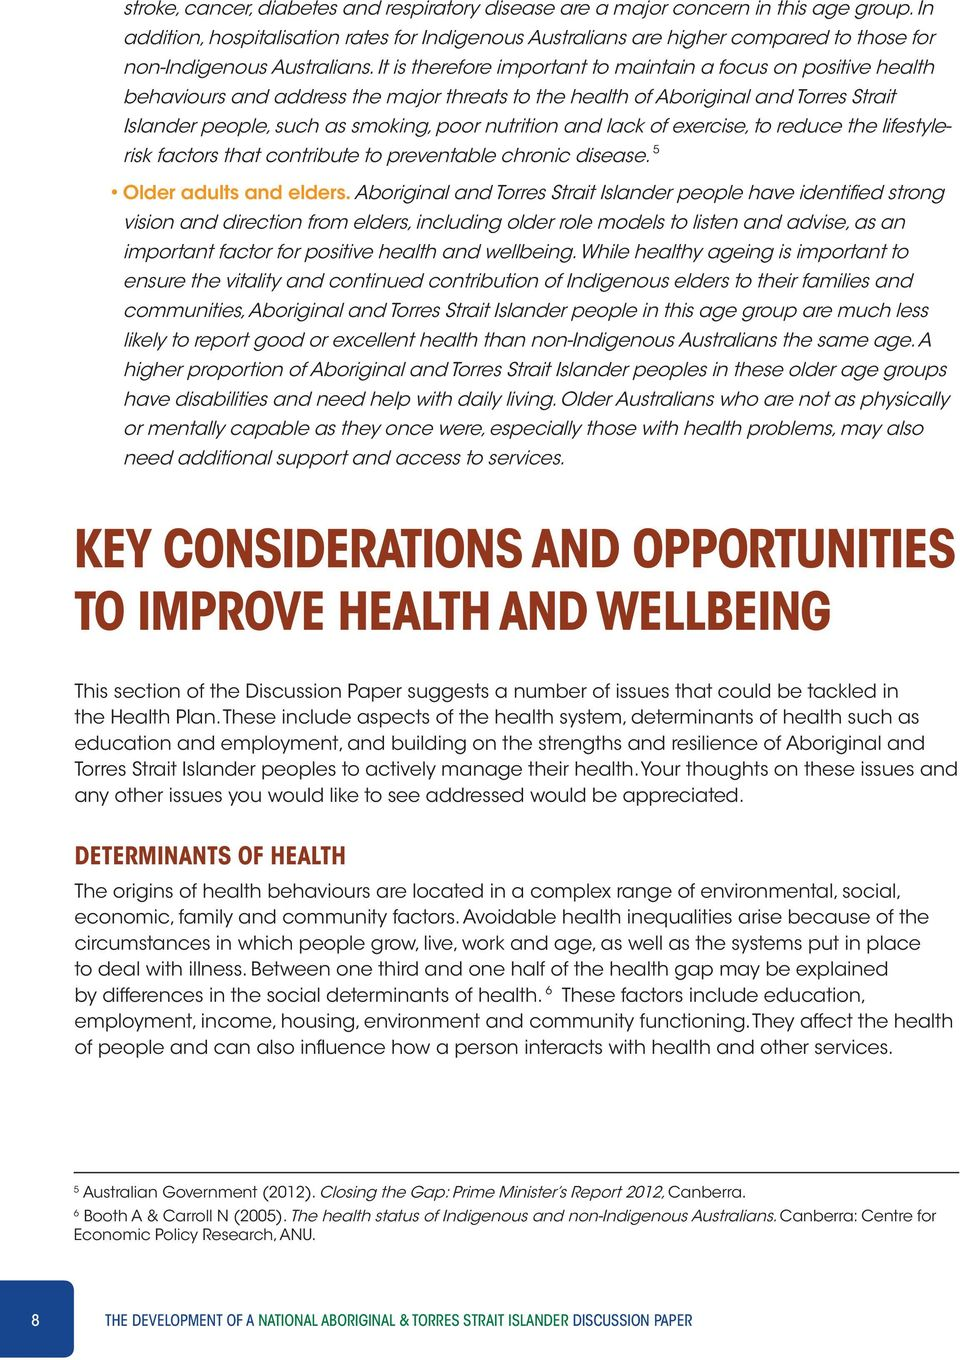 It is therefore important to maintain a focus on positive health behaviours and address the major threats to the health of Aboriginal and Torres Strait Islander people, such as smoking, poor